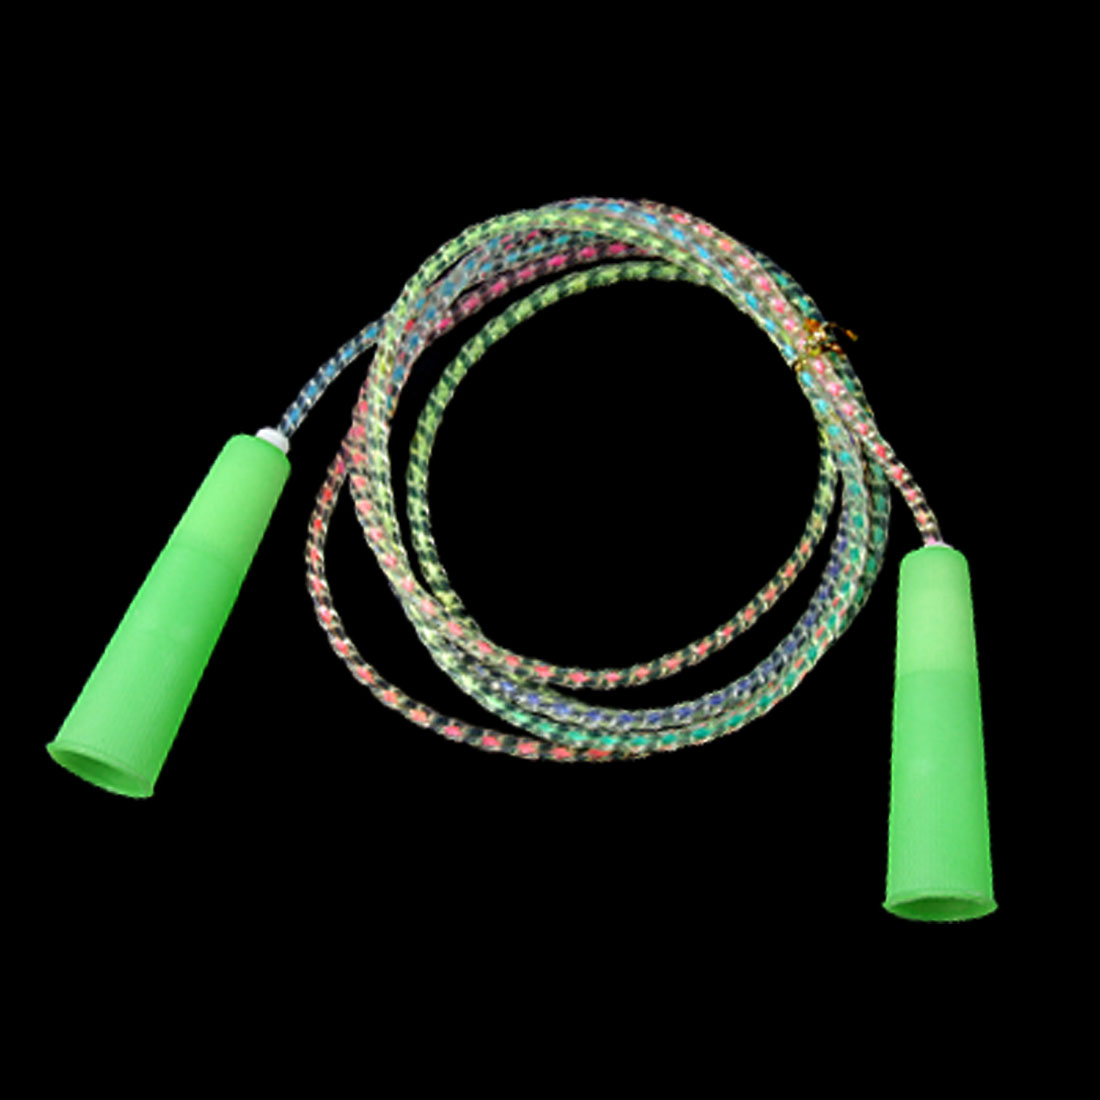 Children Soft Plastic Jumping Skipping Rope w Light Green Handles